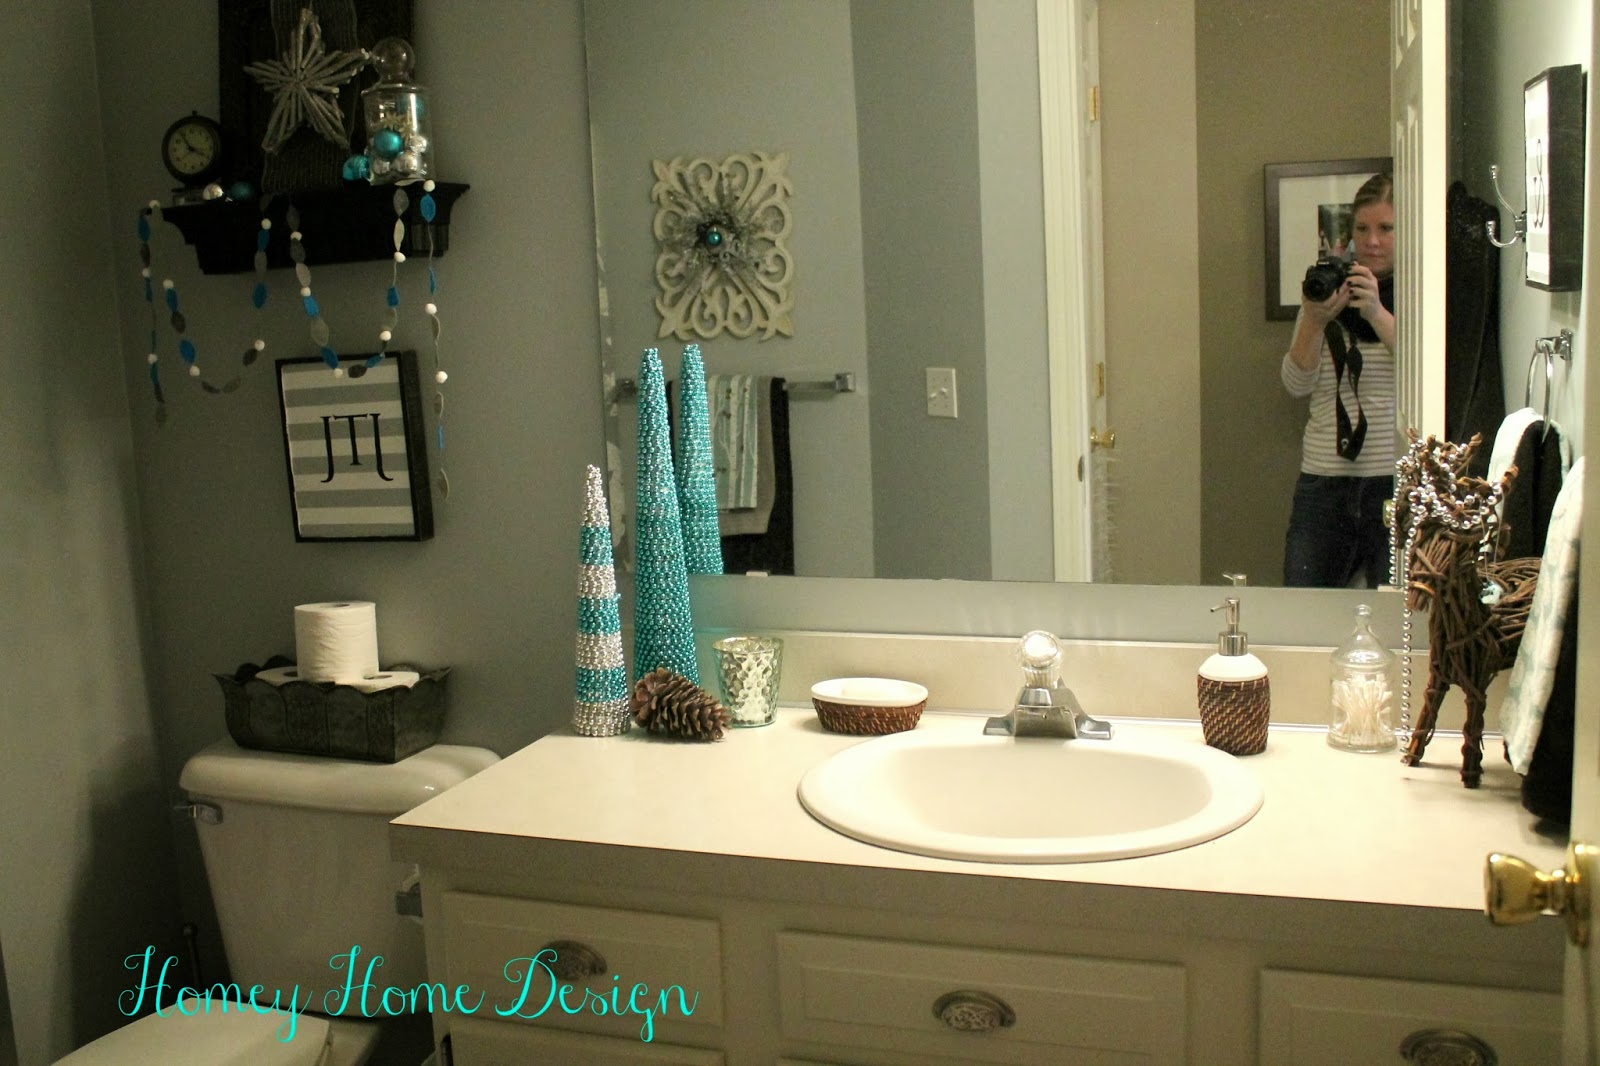 homey home design bathroom christmas ideas interiors inside ideas interiors design about everything magnanprojects